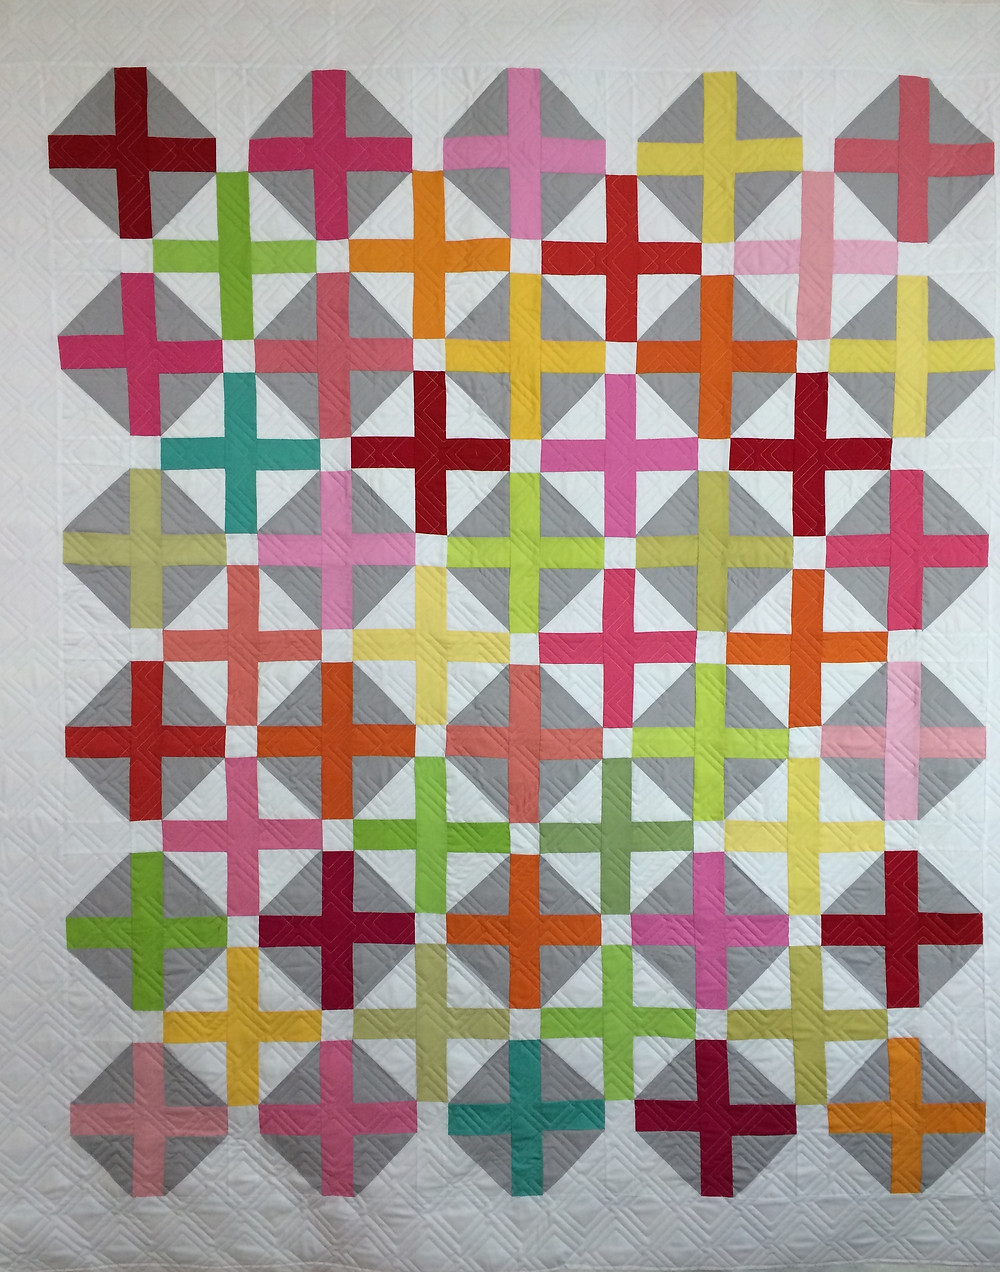 pluses in color quilt